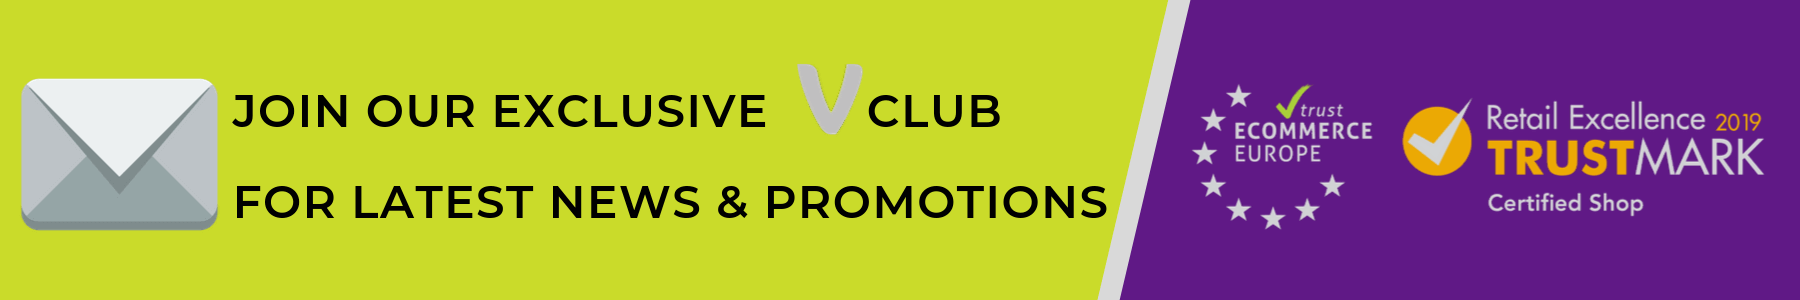 SIGN UP NOW TO BECOME A MEMBER OF OUR V-CLUB